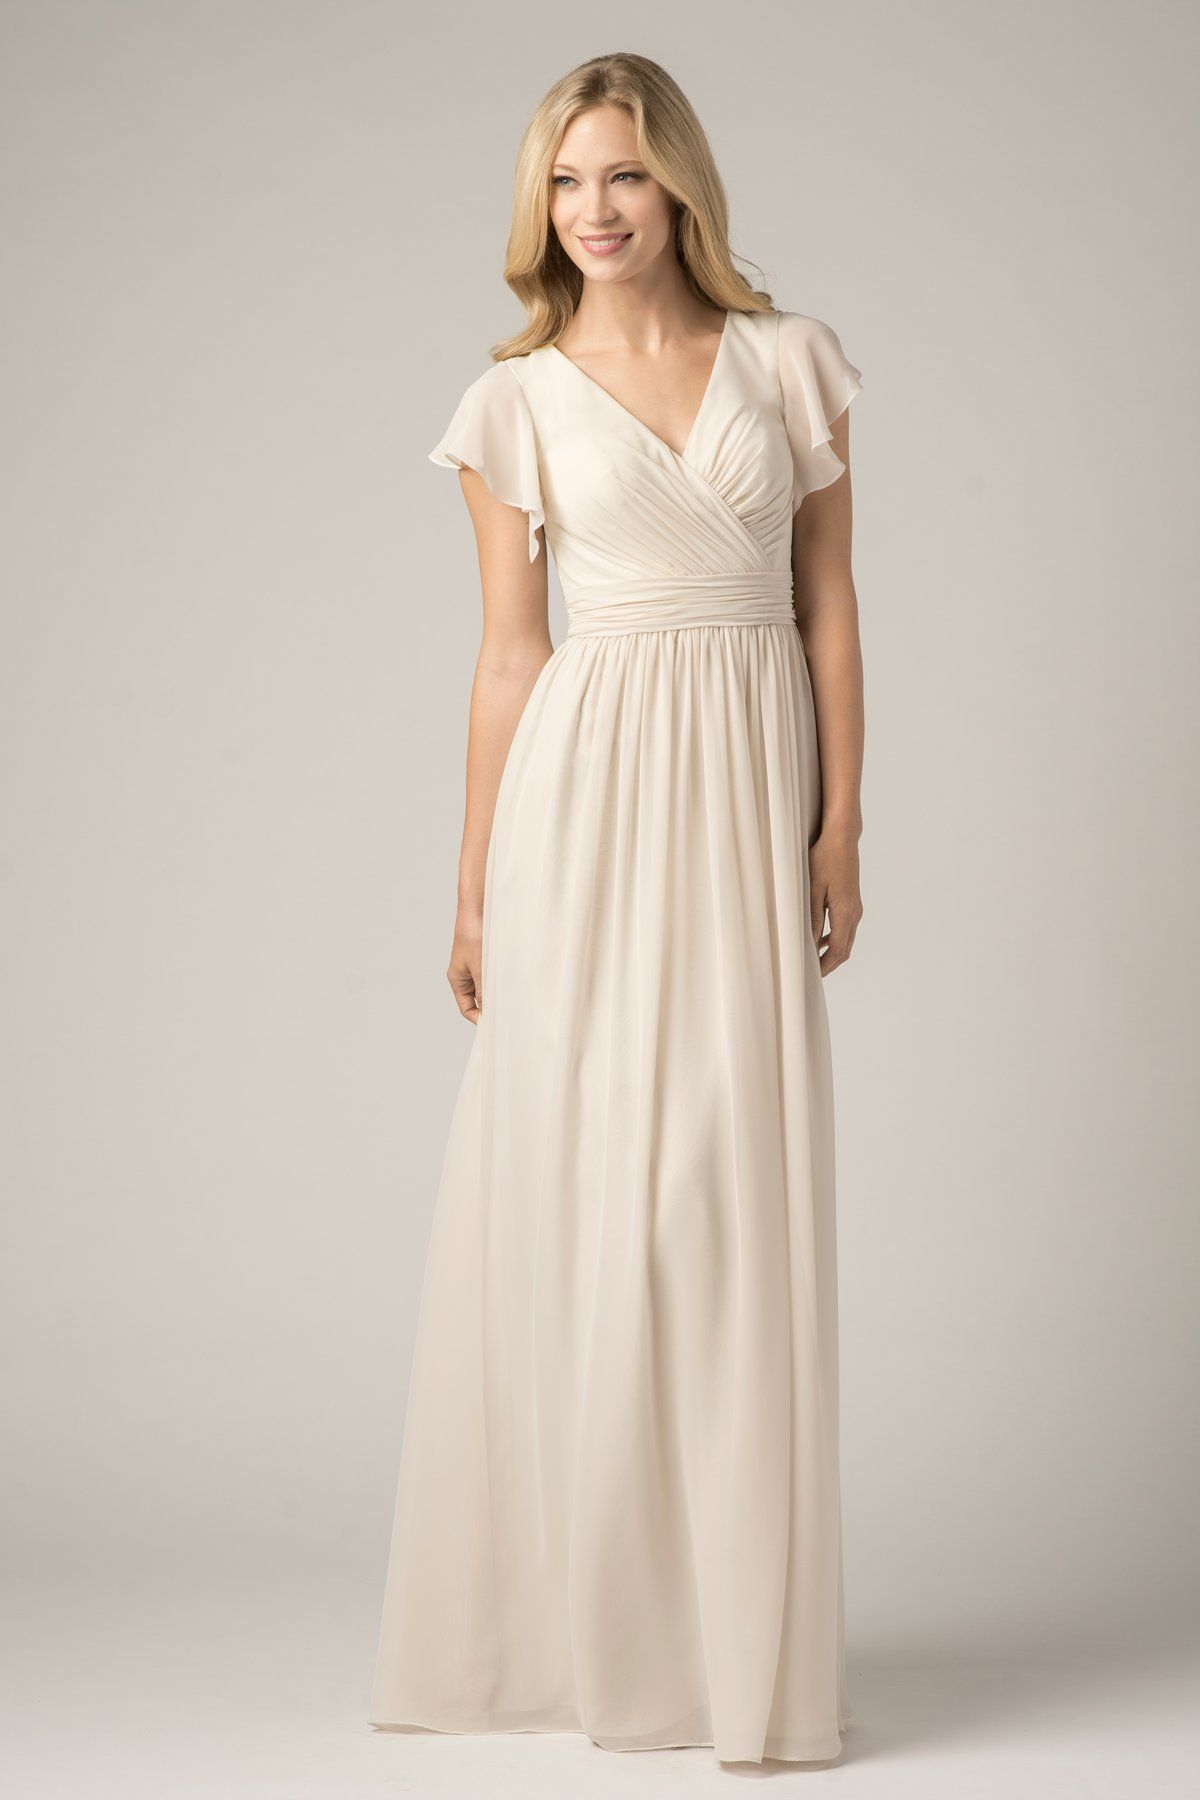 Wishesbridal champagne chiffon v neck floor length a line wtoo 812 elegant crystal chiffon long bridesmaid dress with flutter sleeves v neckline and shirred details on bodice ombrellifo Image collections